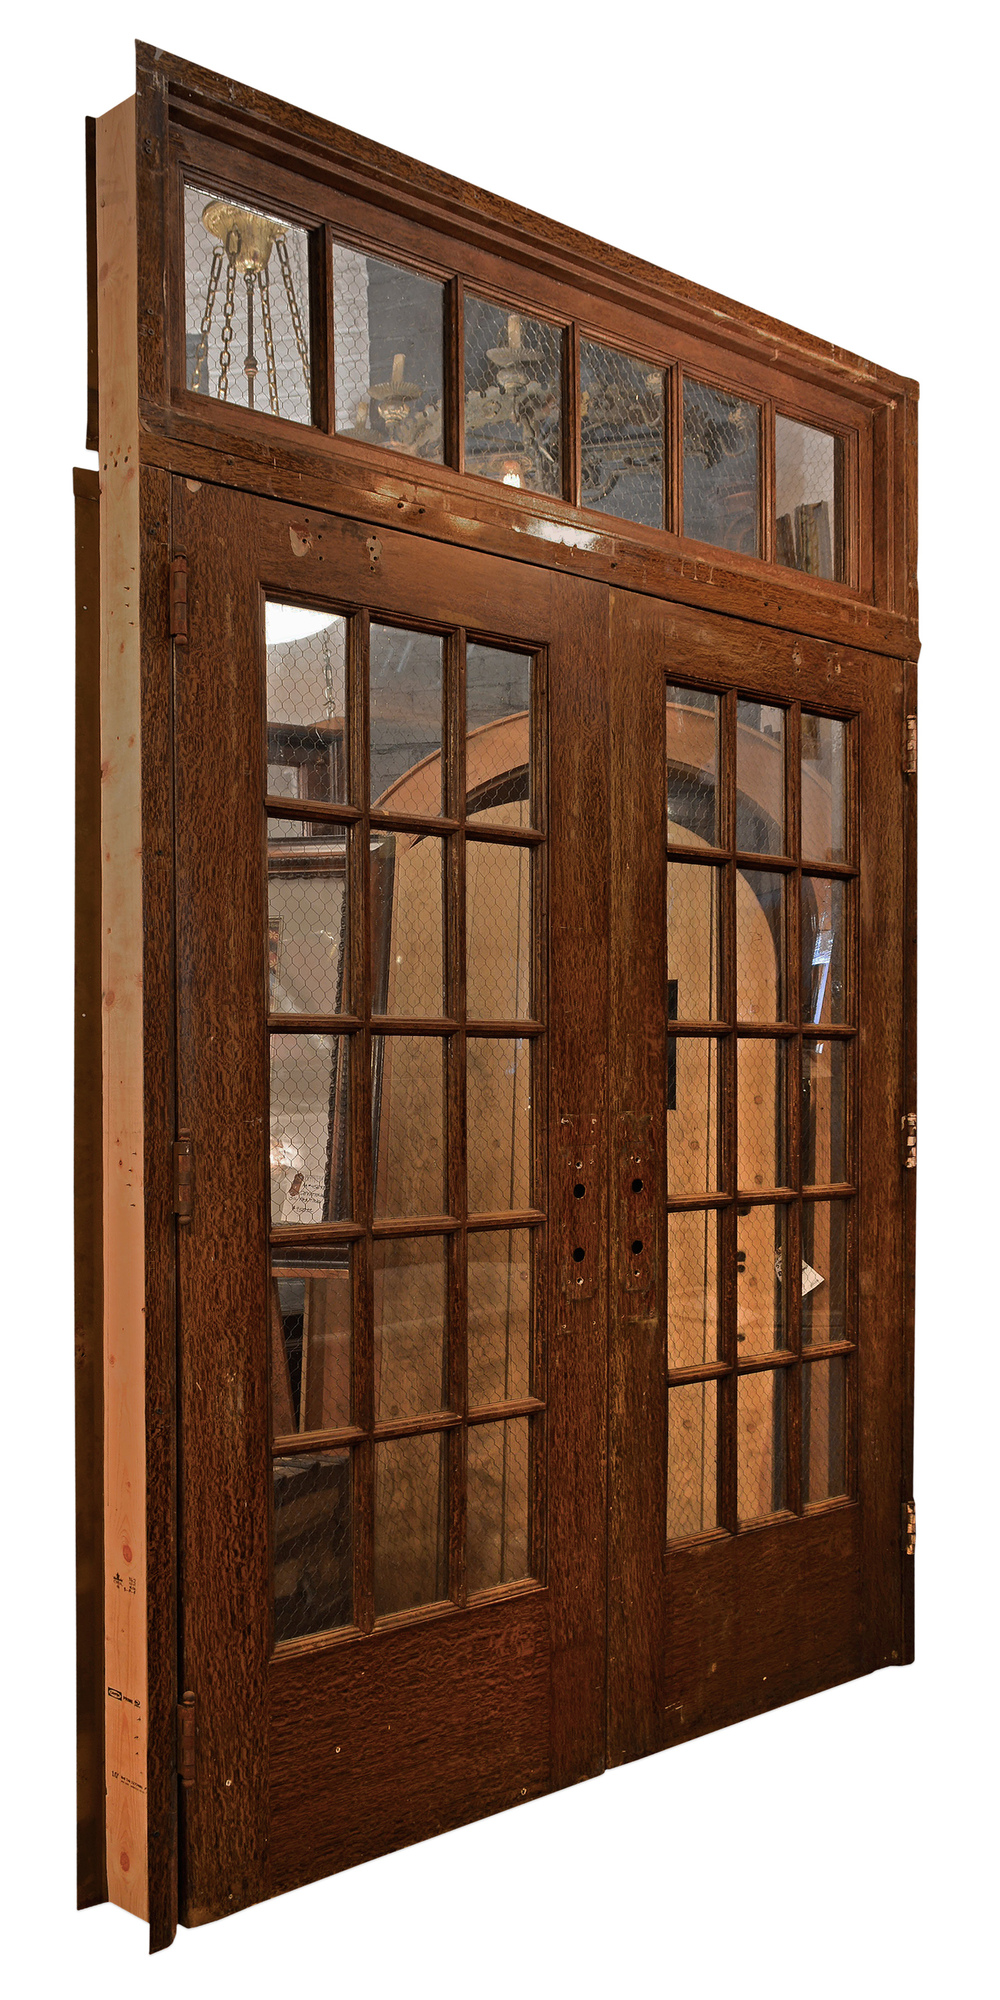 chicken wire glass panel doors — ARCHITECTURAL ANTIQUES